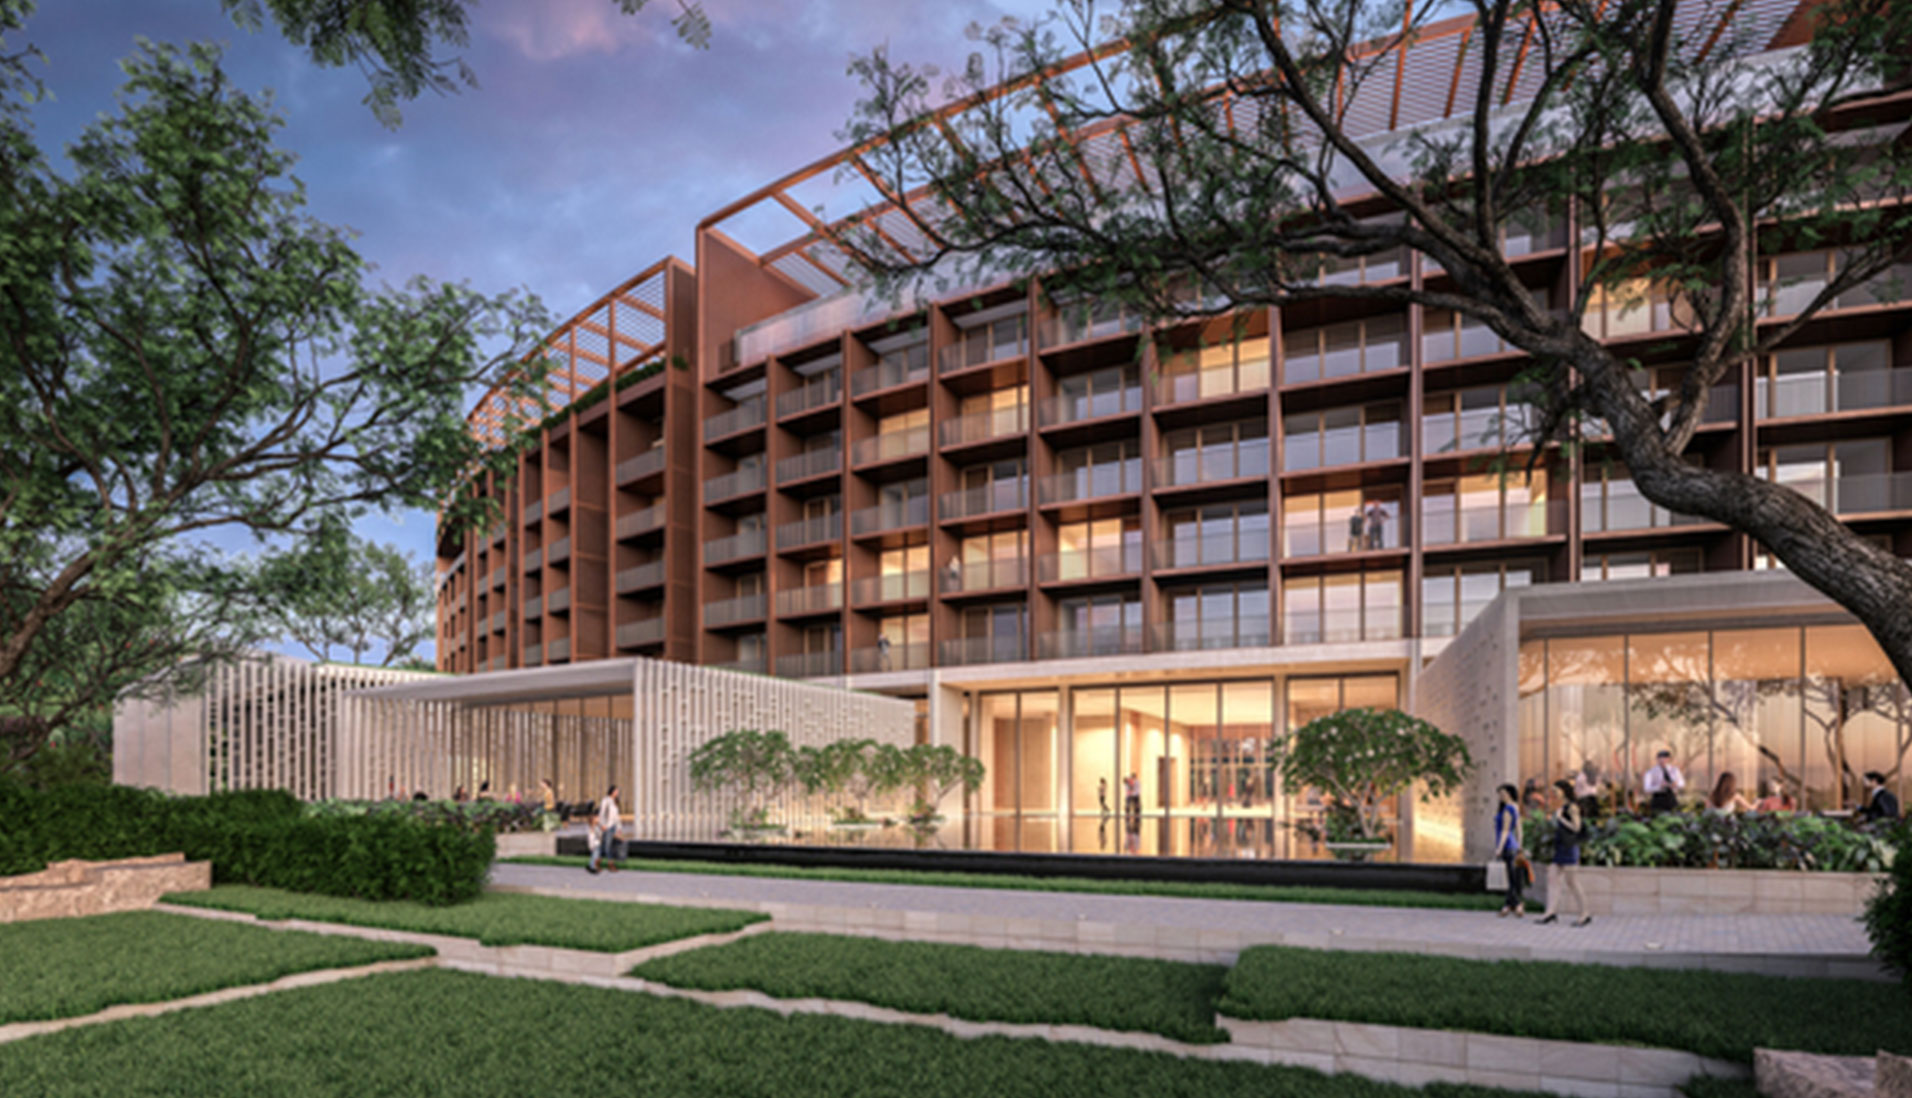 Approval has been granted for a luxury hotel in Darwin that will be built by the Chinese company Landbridge which has leased the city's port.